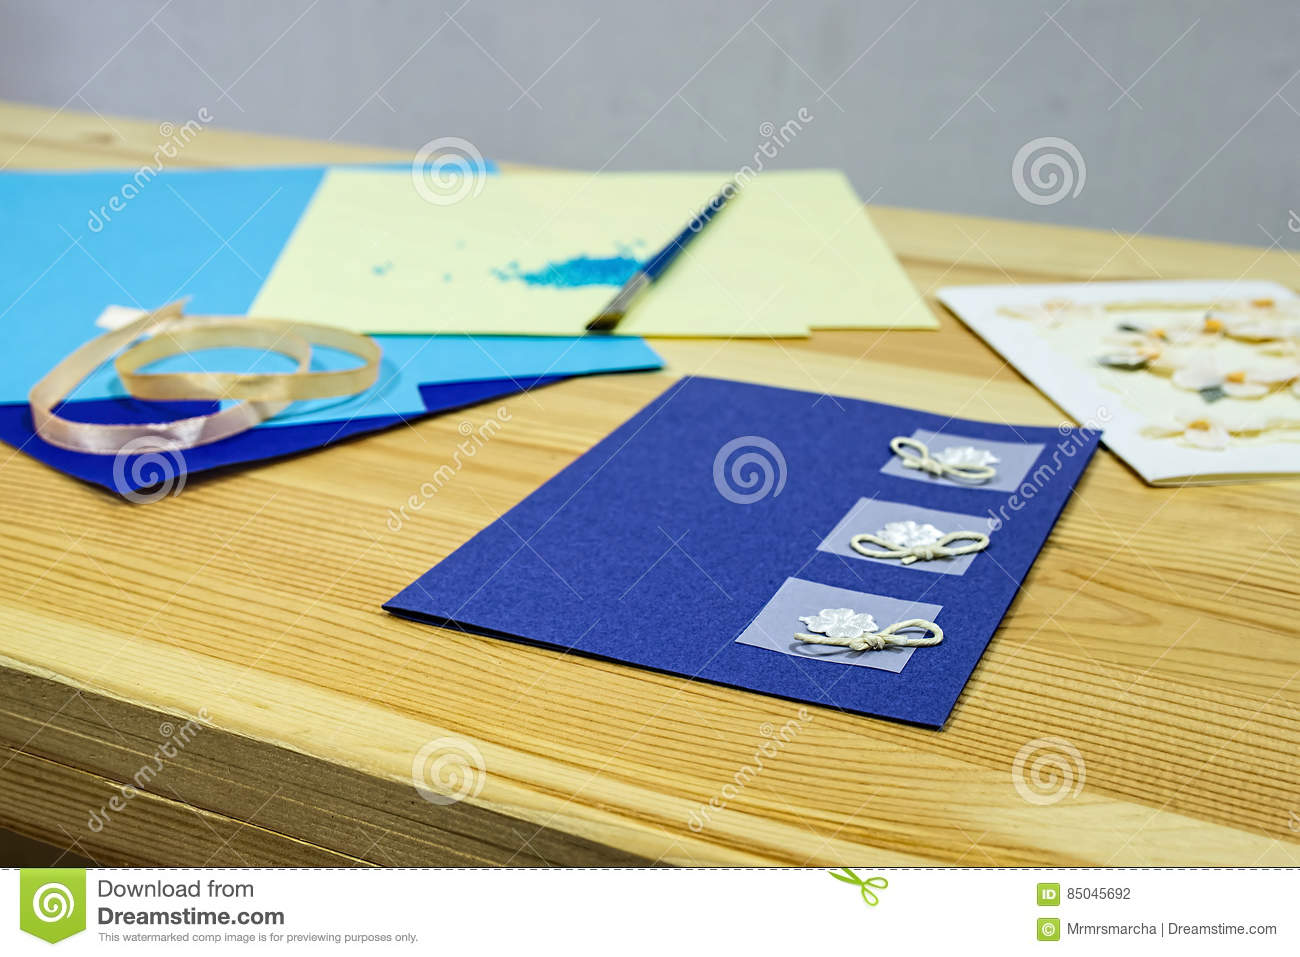 Craft Greeting Card Income From Hobbies Home Business Stock Photo